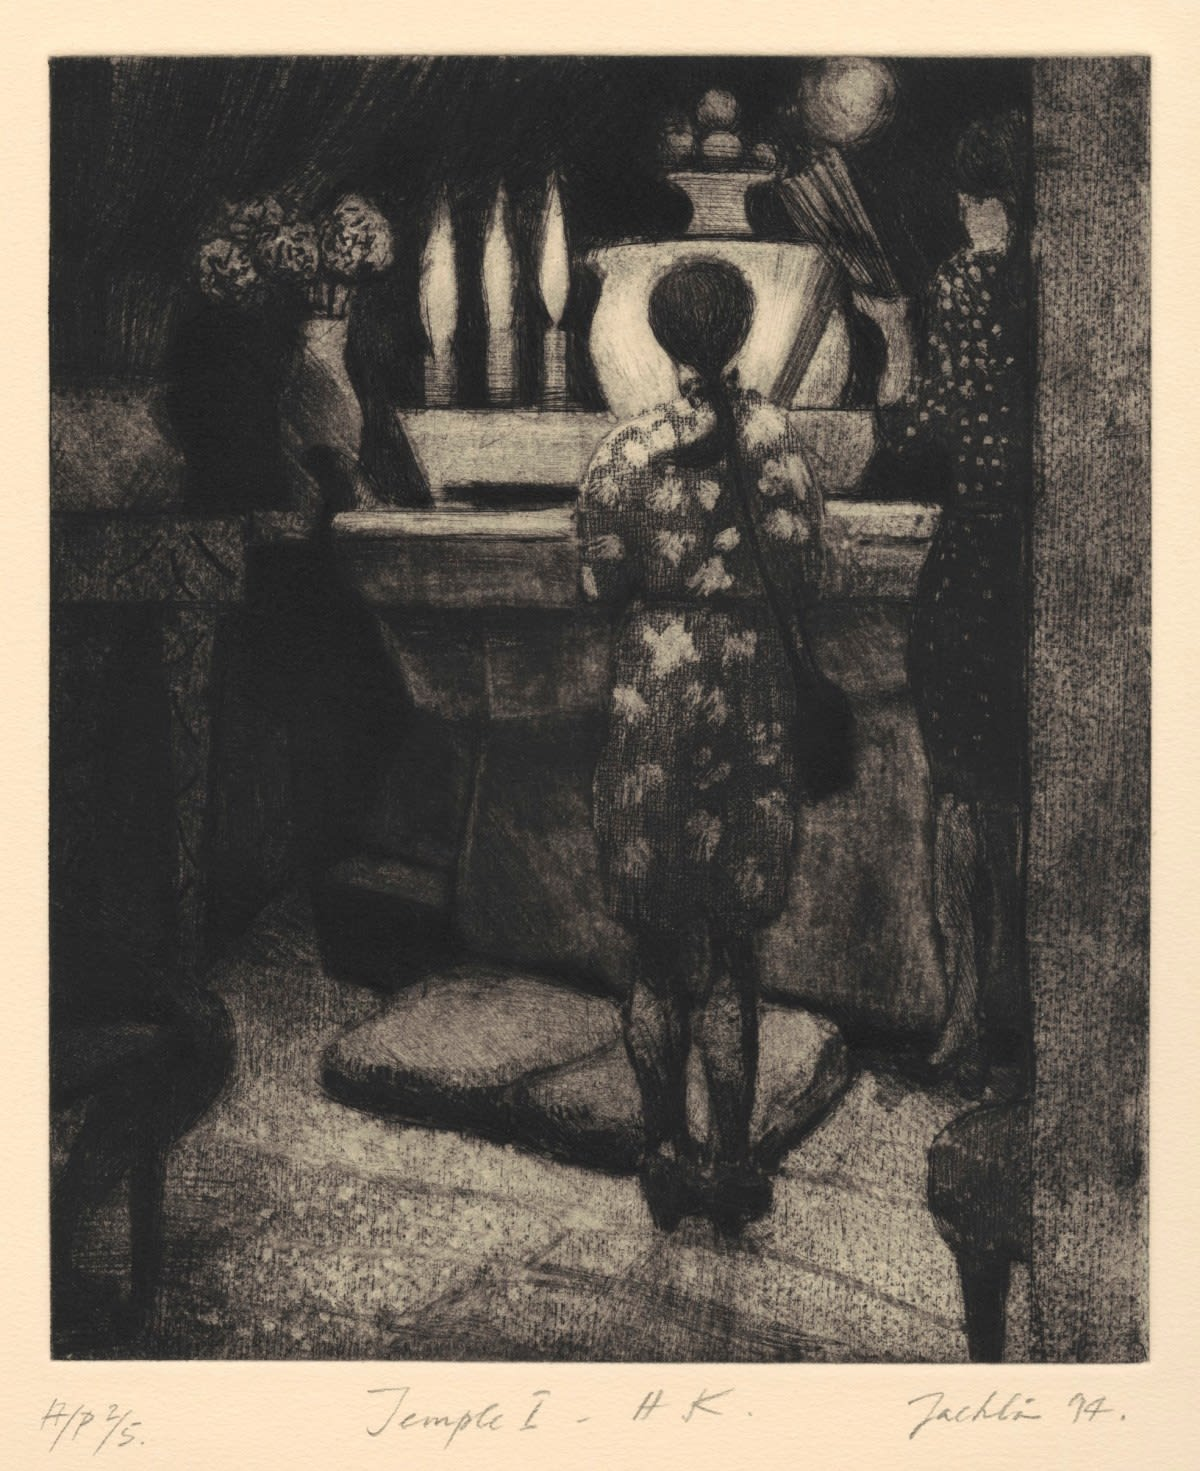 Bill Jacklin RA, Temple I - H. K, 1994 Etching & Aquatint